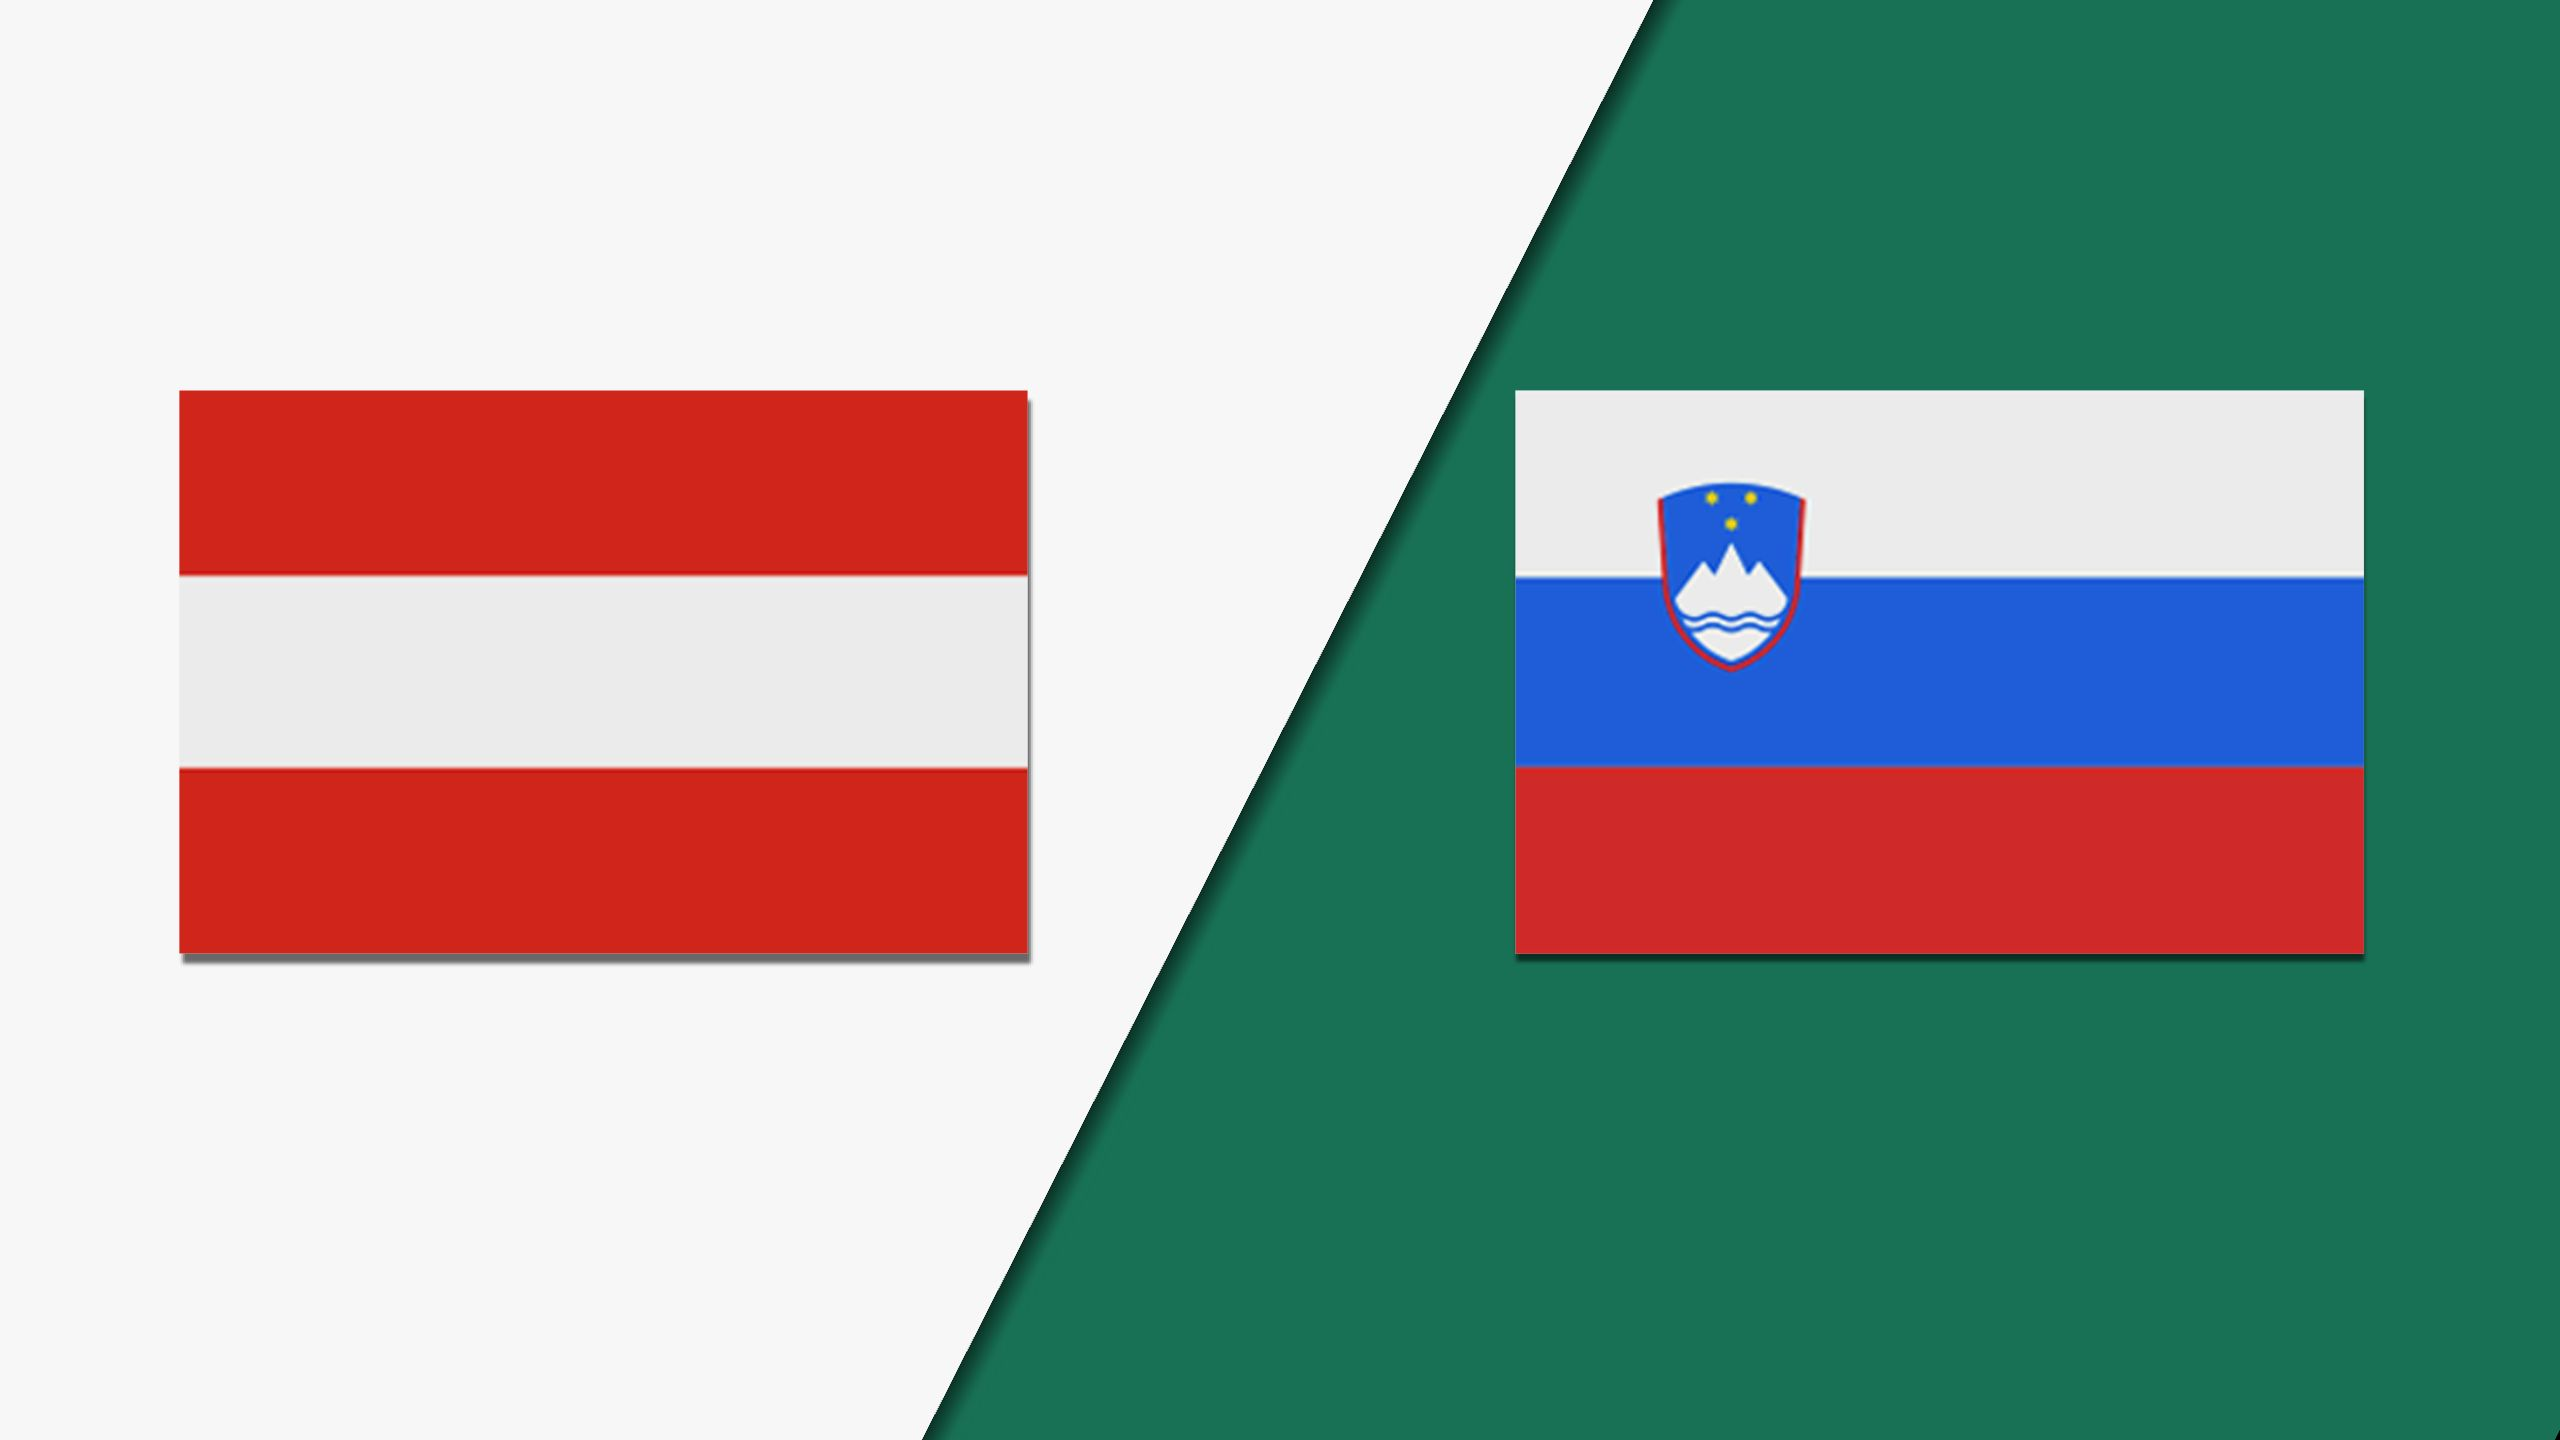 Austria vs. Slovenia (International Friendly)